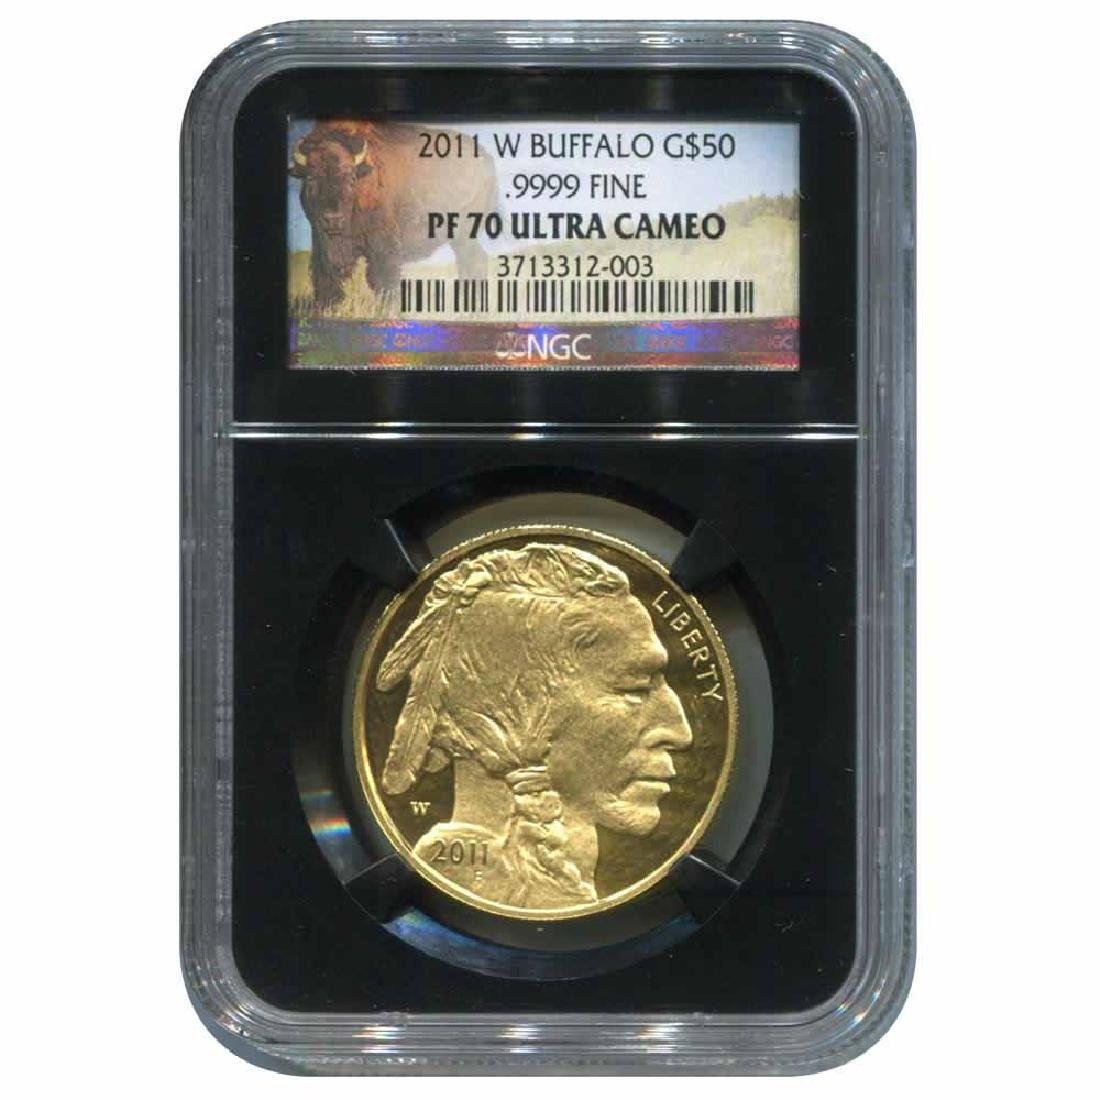 Certified Proof Buffalo Gold Coin 2011-W PF70 Ultra Cam